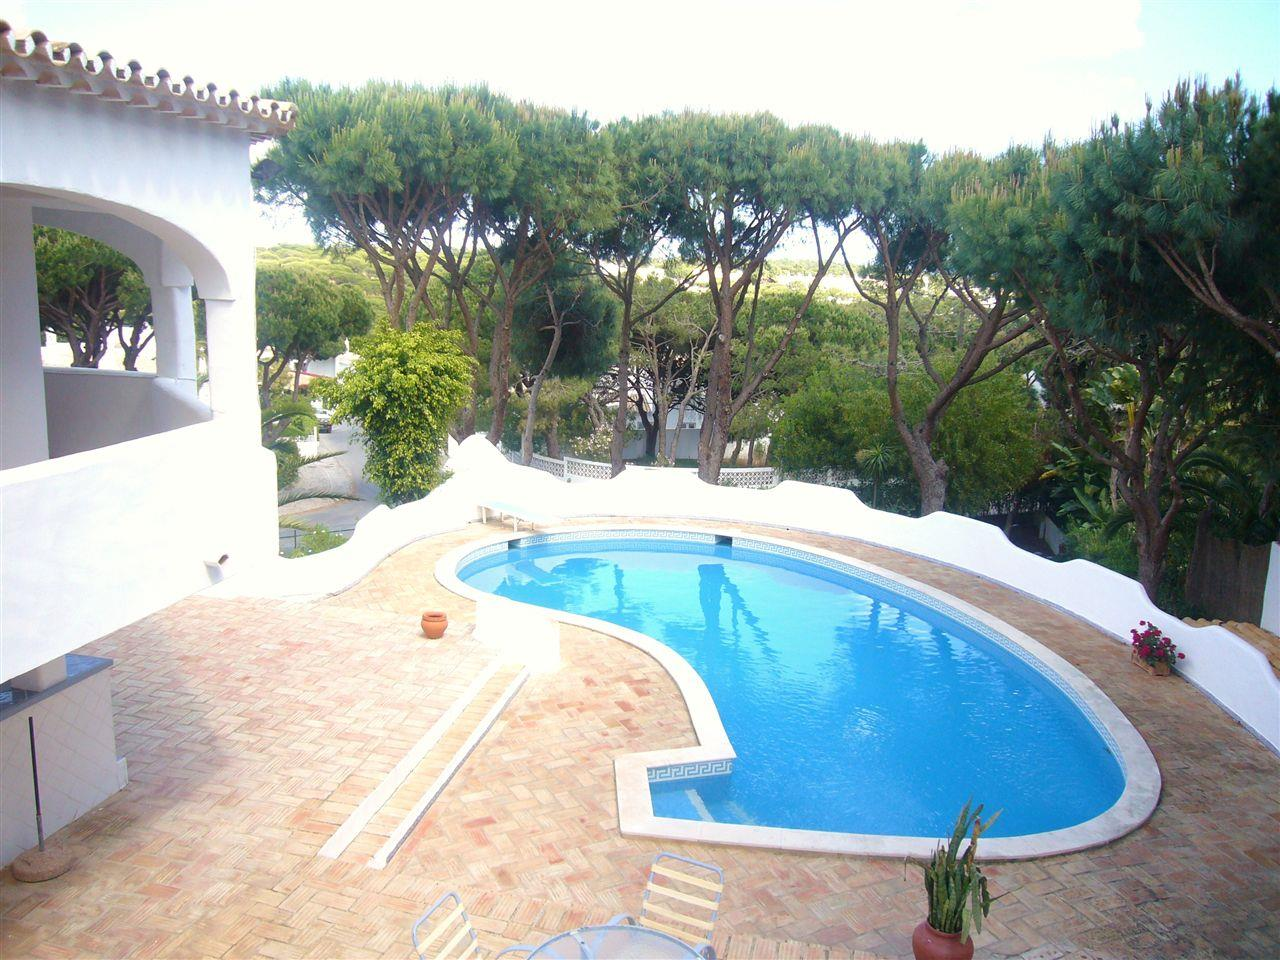 Tek Ailelik Ev için Satış at House, 5 bedrooms, for Sale Loule, Algarve 8135-170 Portekiz